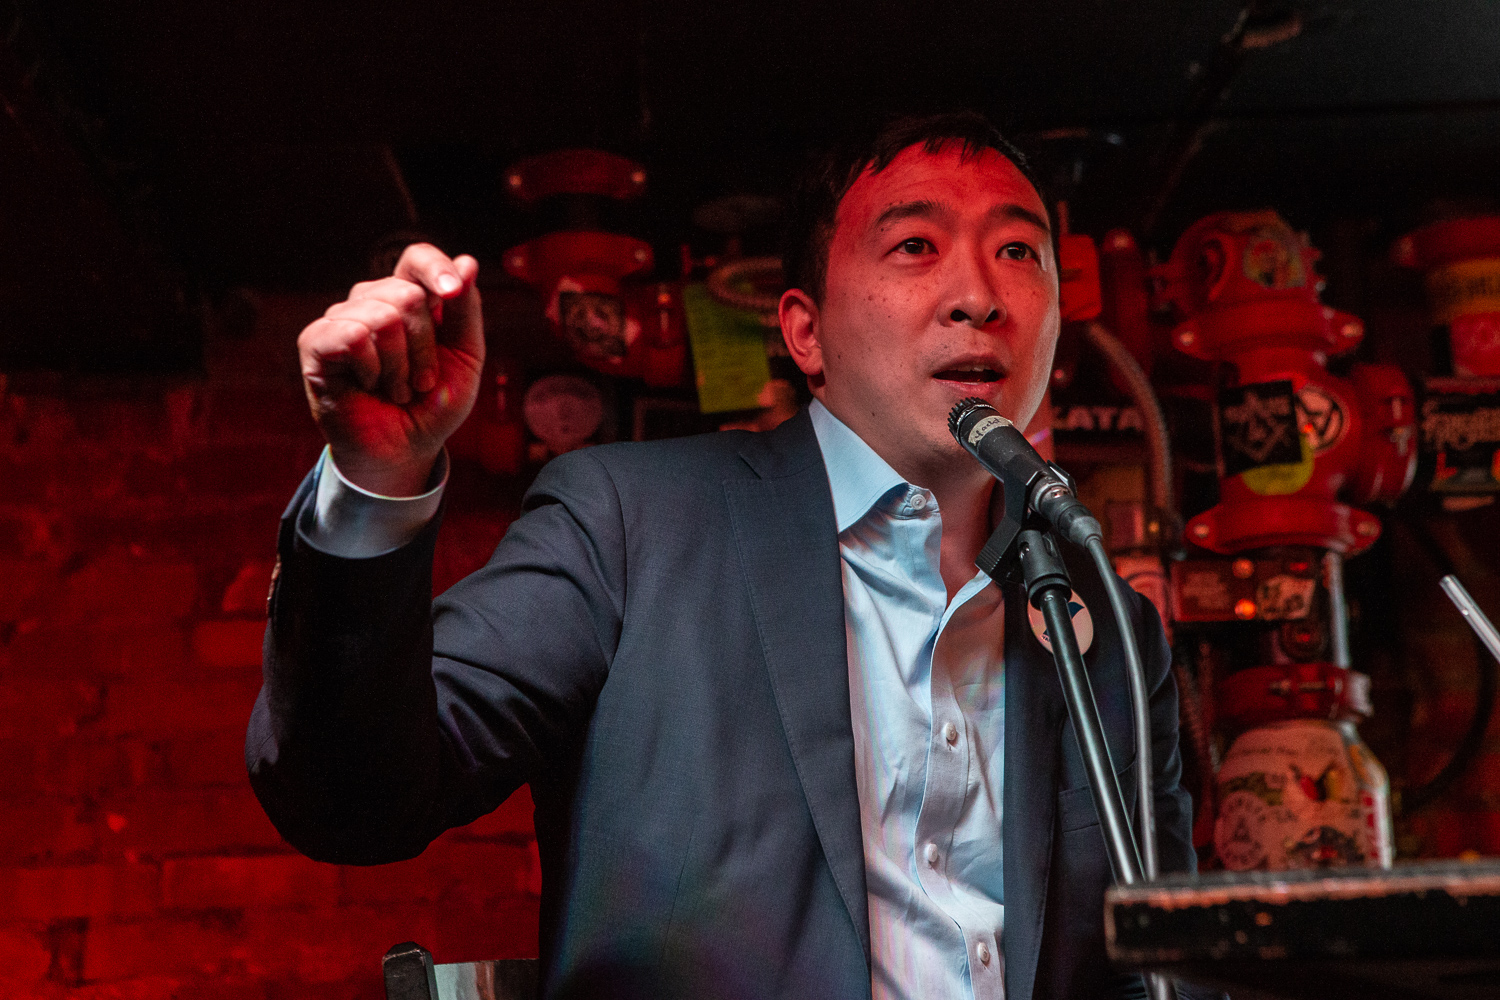 Democratic presidential-nomination candidate Andrew Yang speaks during a Political Party Live event at the Yacht Club in Iowa City on Wednesday, March 13, 2019. During the event, presidential-nomination candidate Yang spoke about his background in the technology industry, and his plans if he wins the presidency.